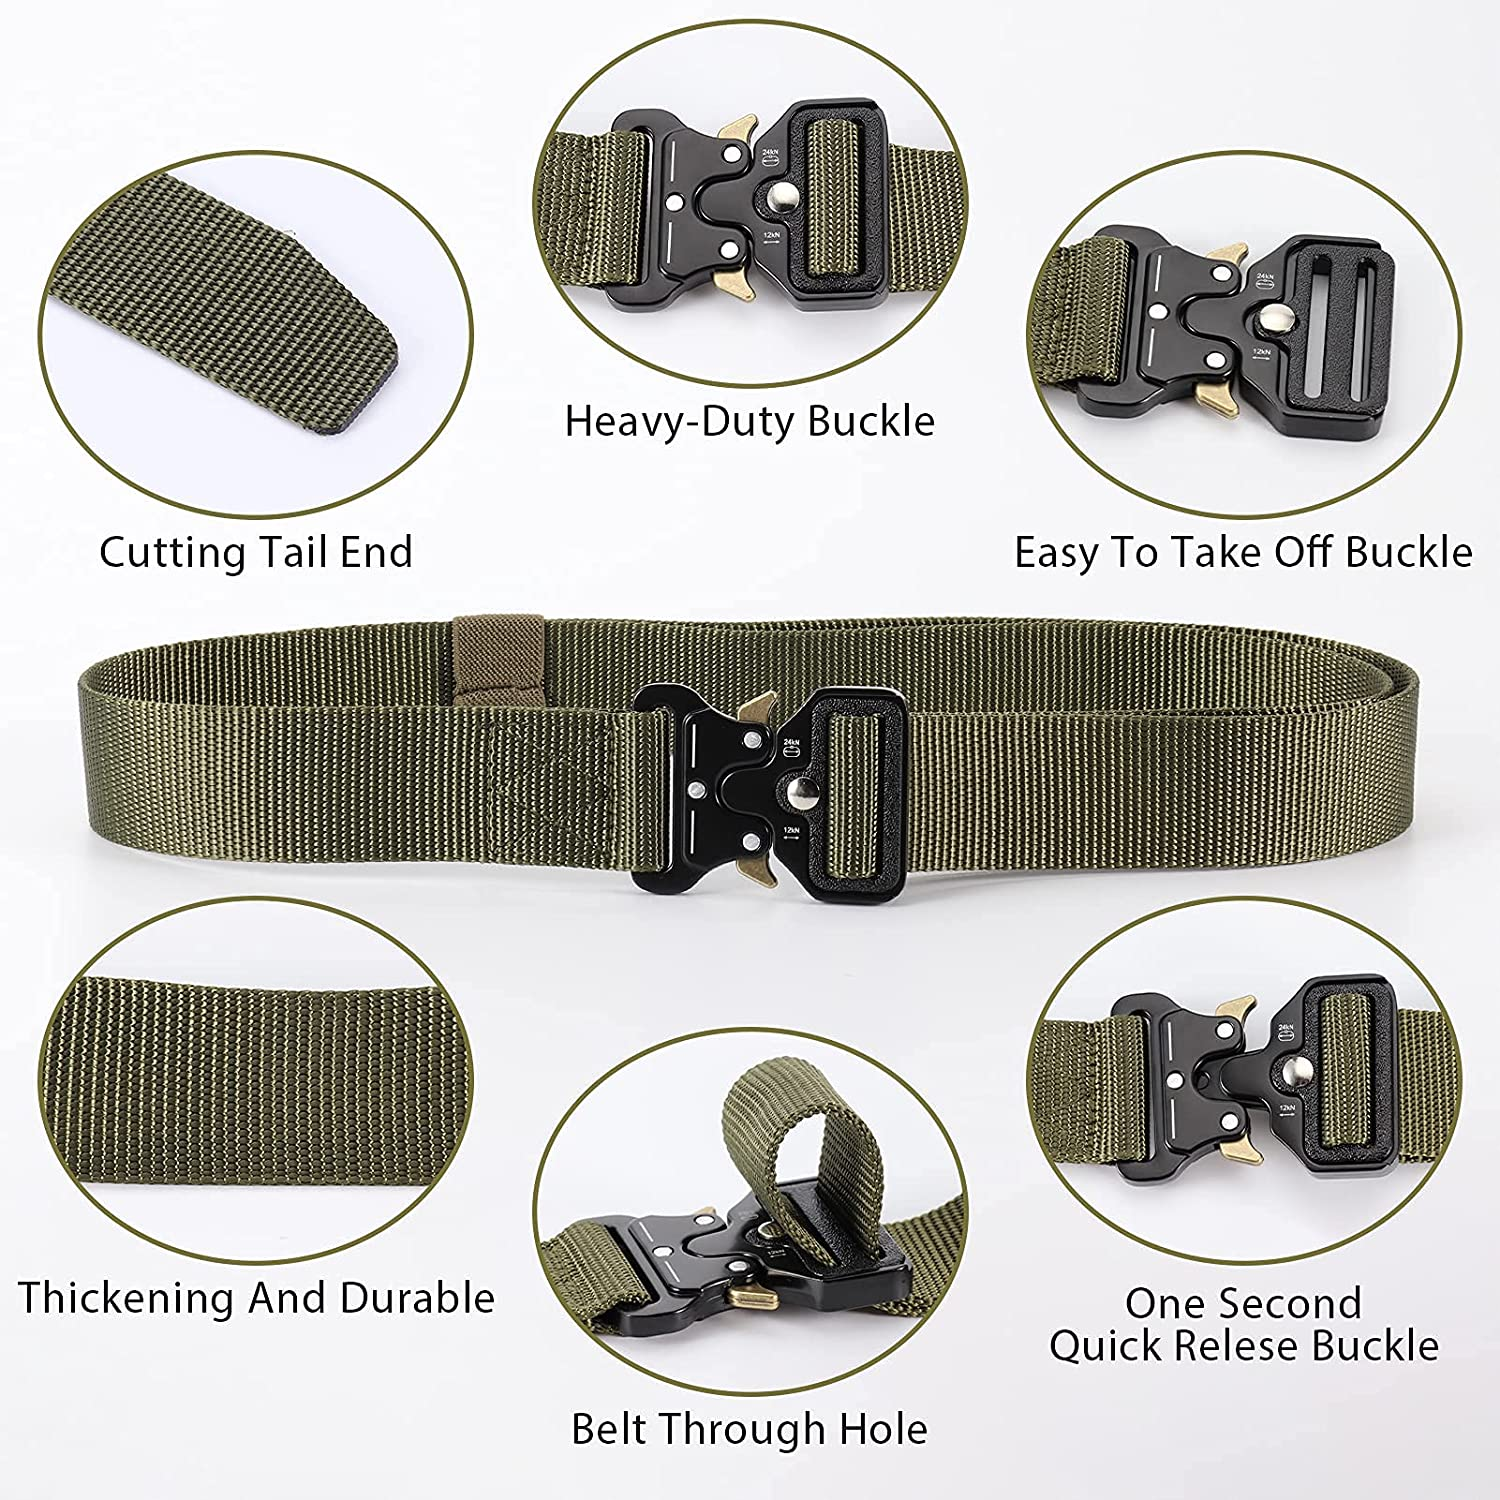 Facynos 2-Packs Tactical Sport Belt, Military Style Webbing Riggers Gun Belt, Hiking Belt with Quick Release Metal Buckle